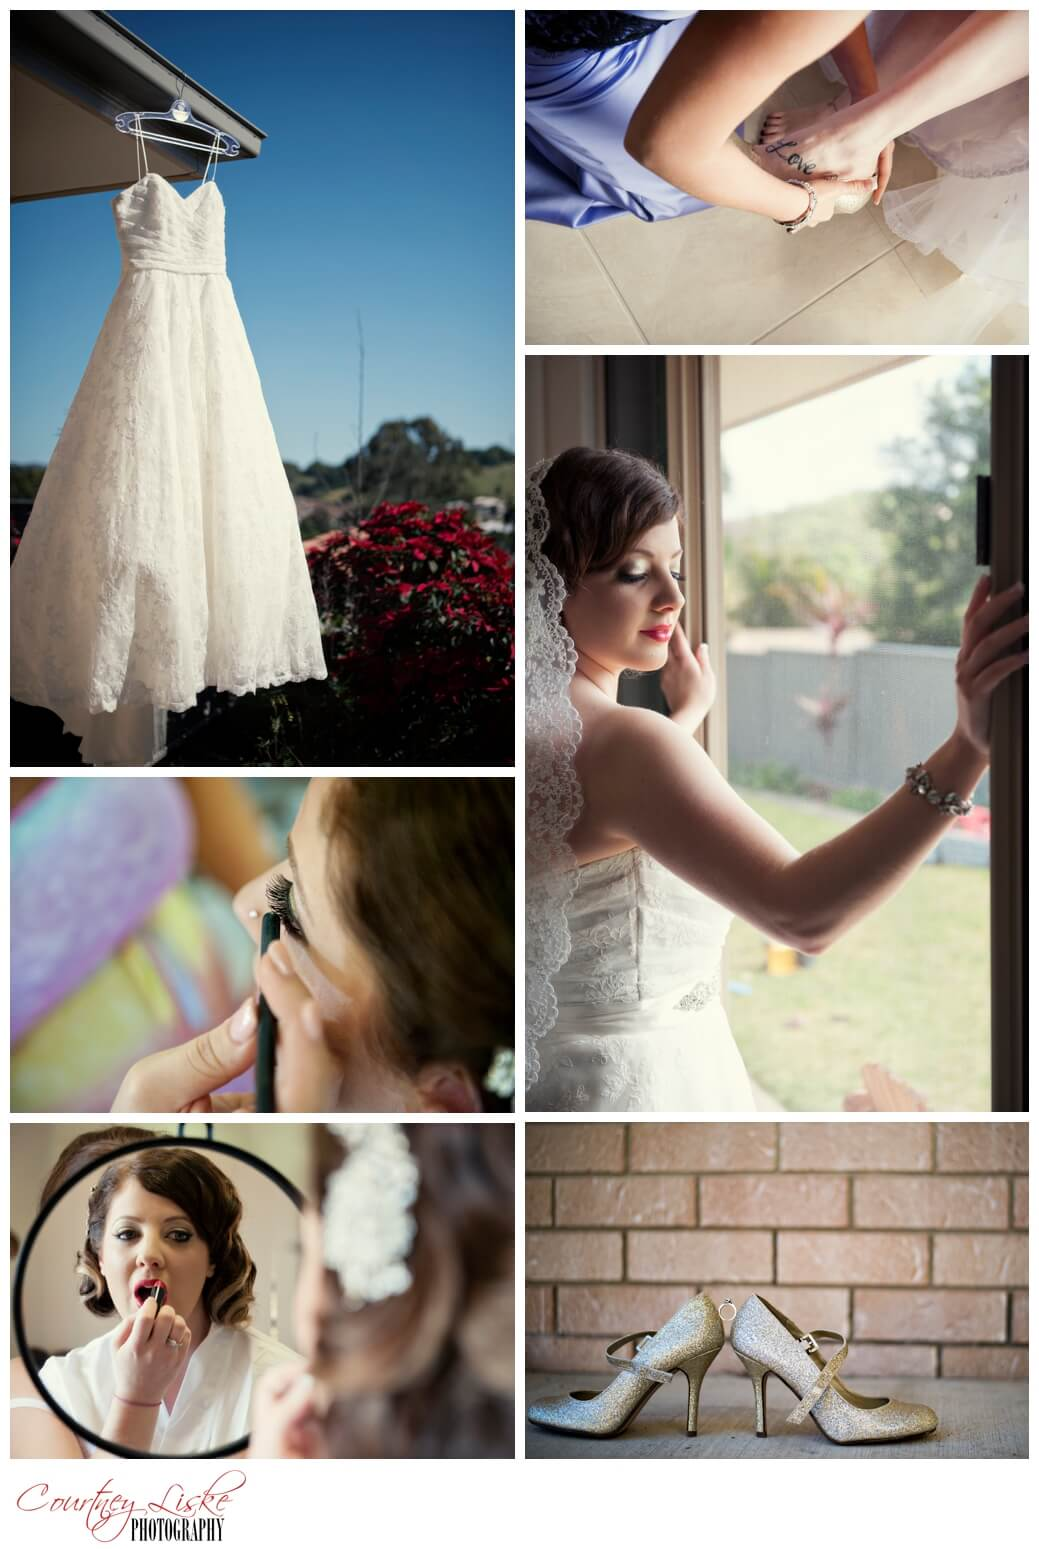 Carlen & Amy - Regina Wedding Photographer - Courtney Liske Photography